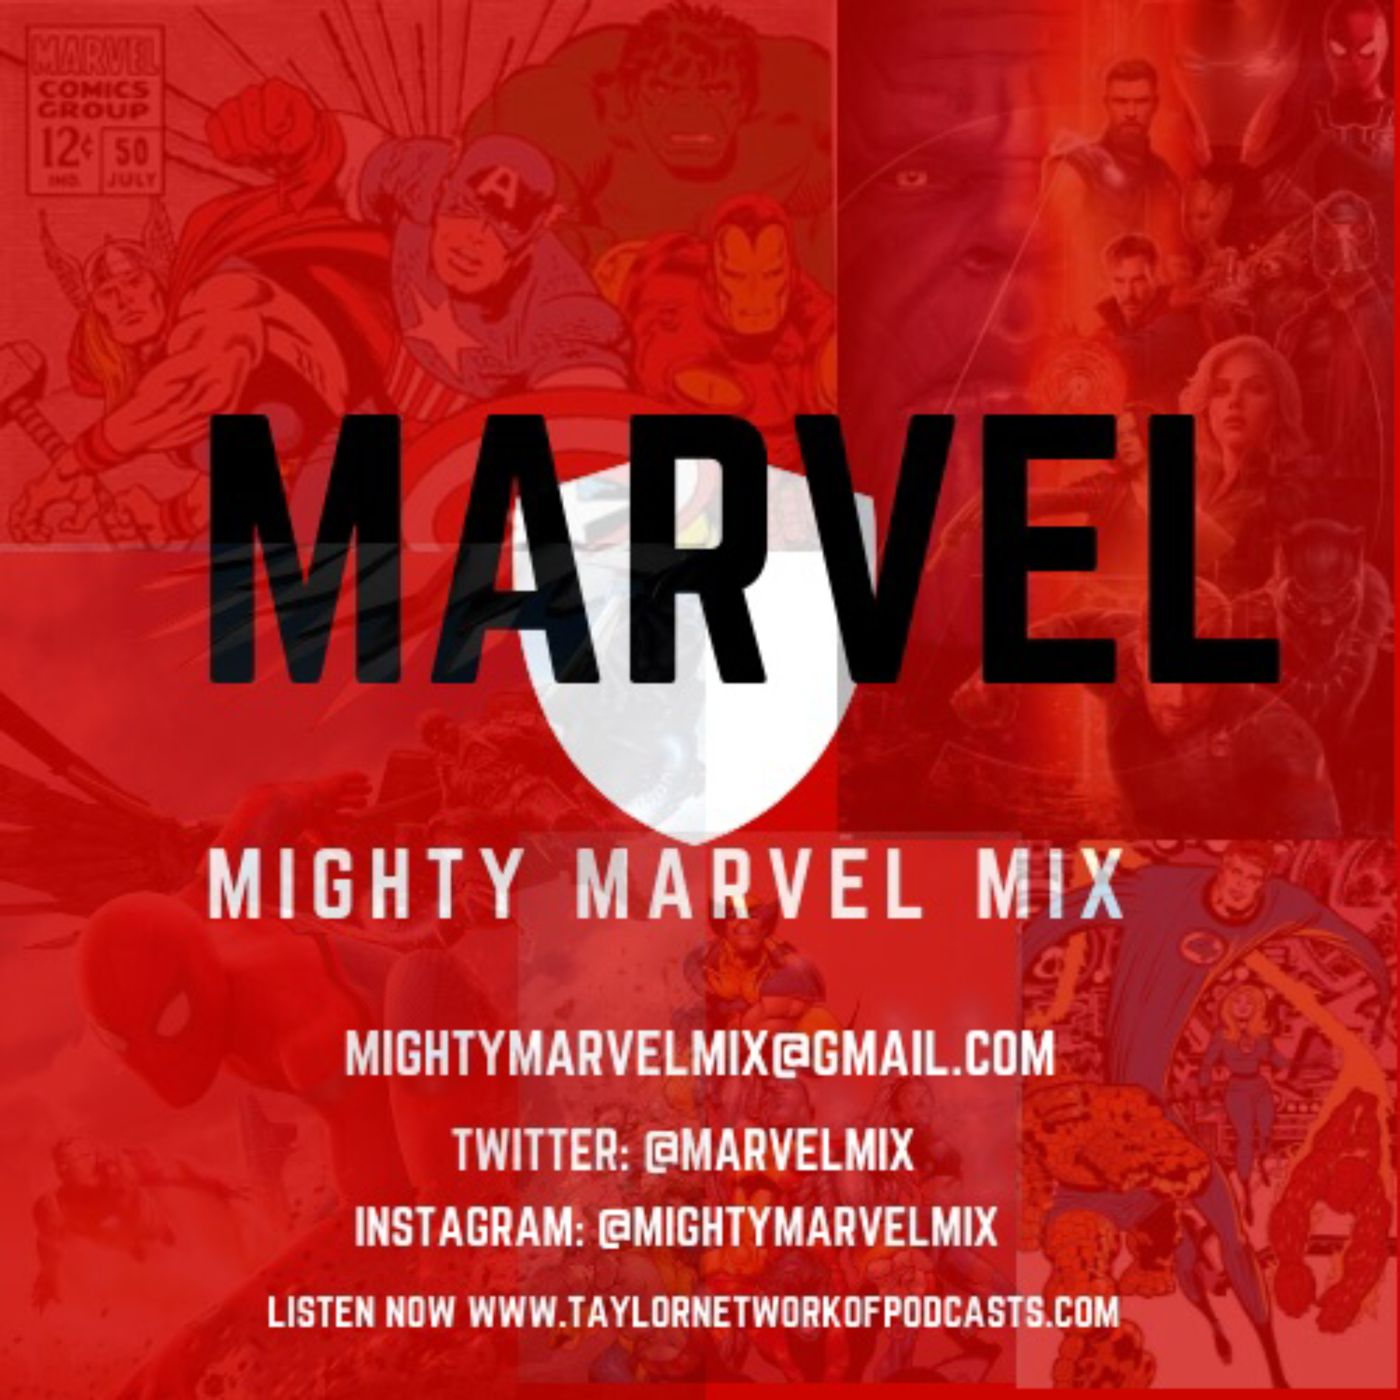 Mighty Marvel Mix